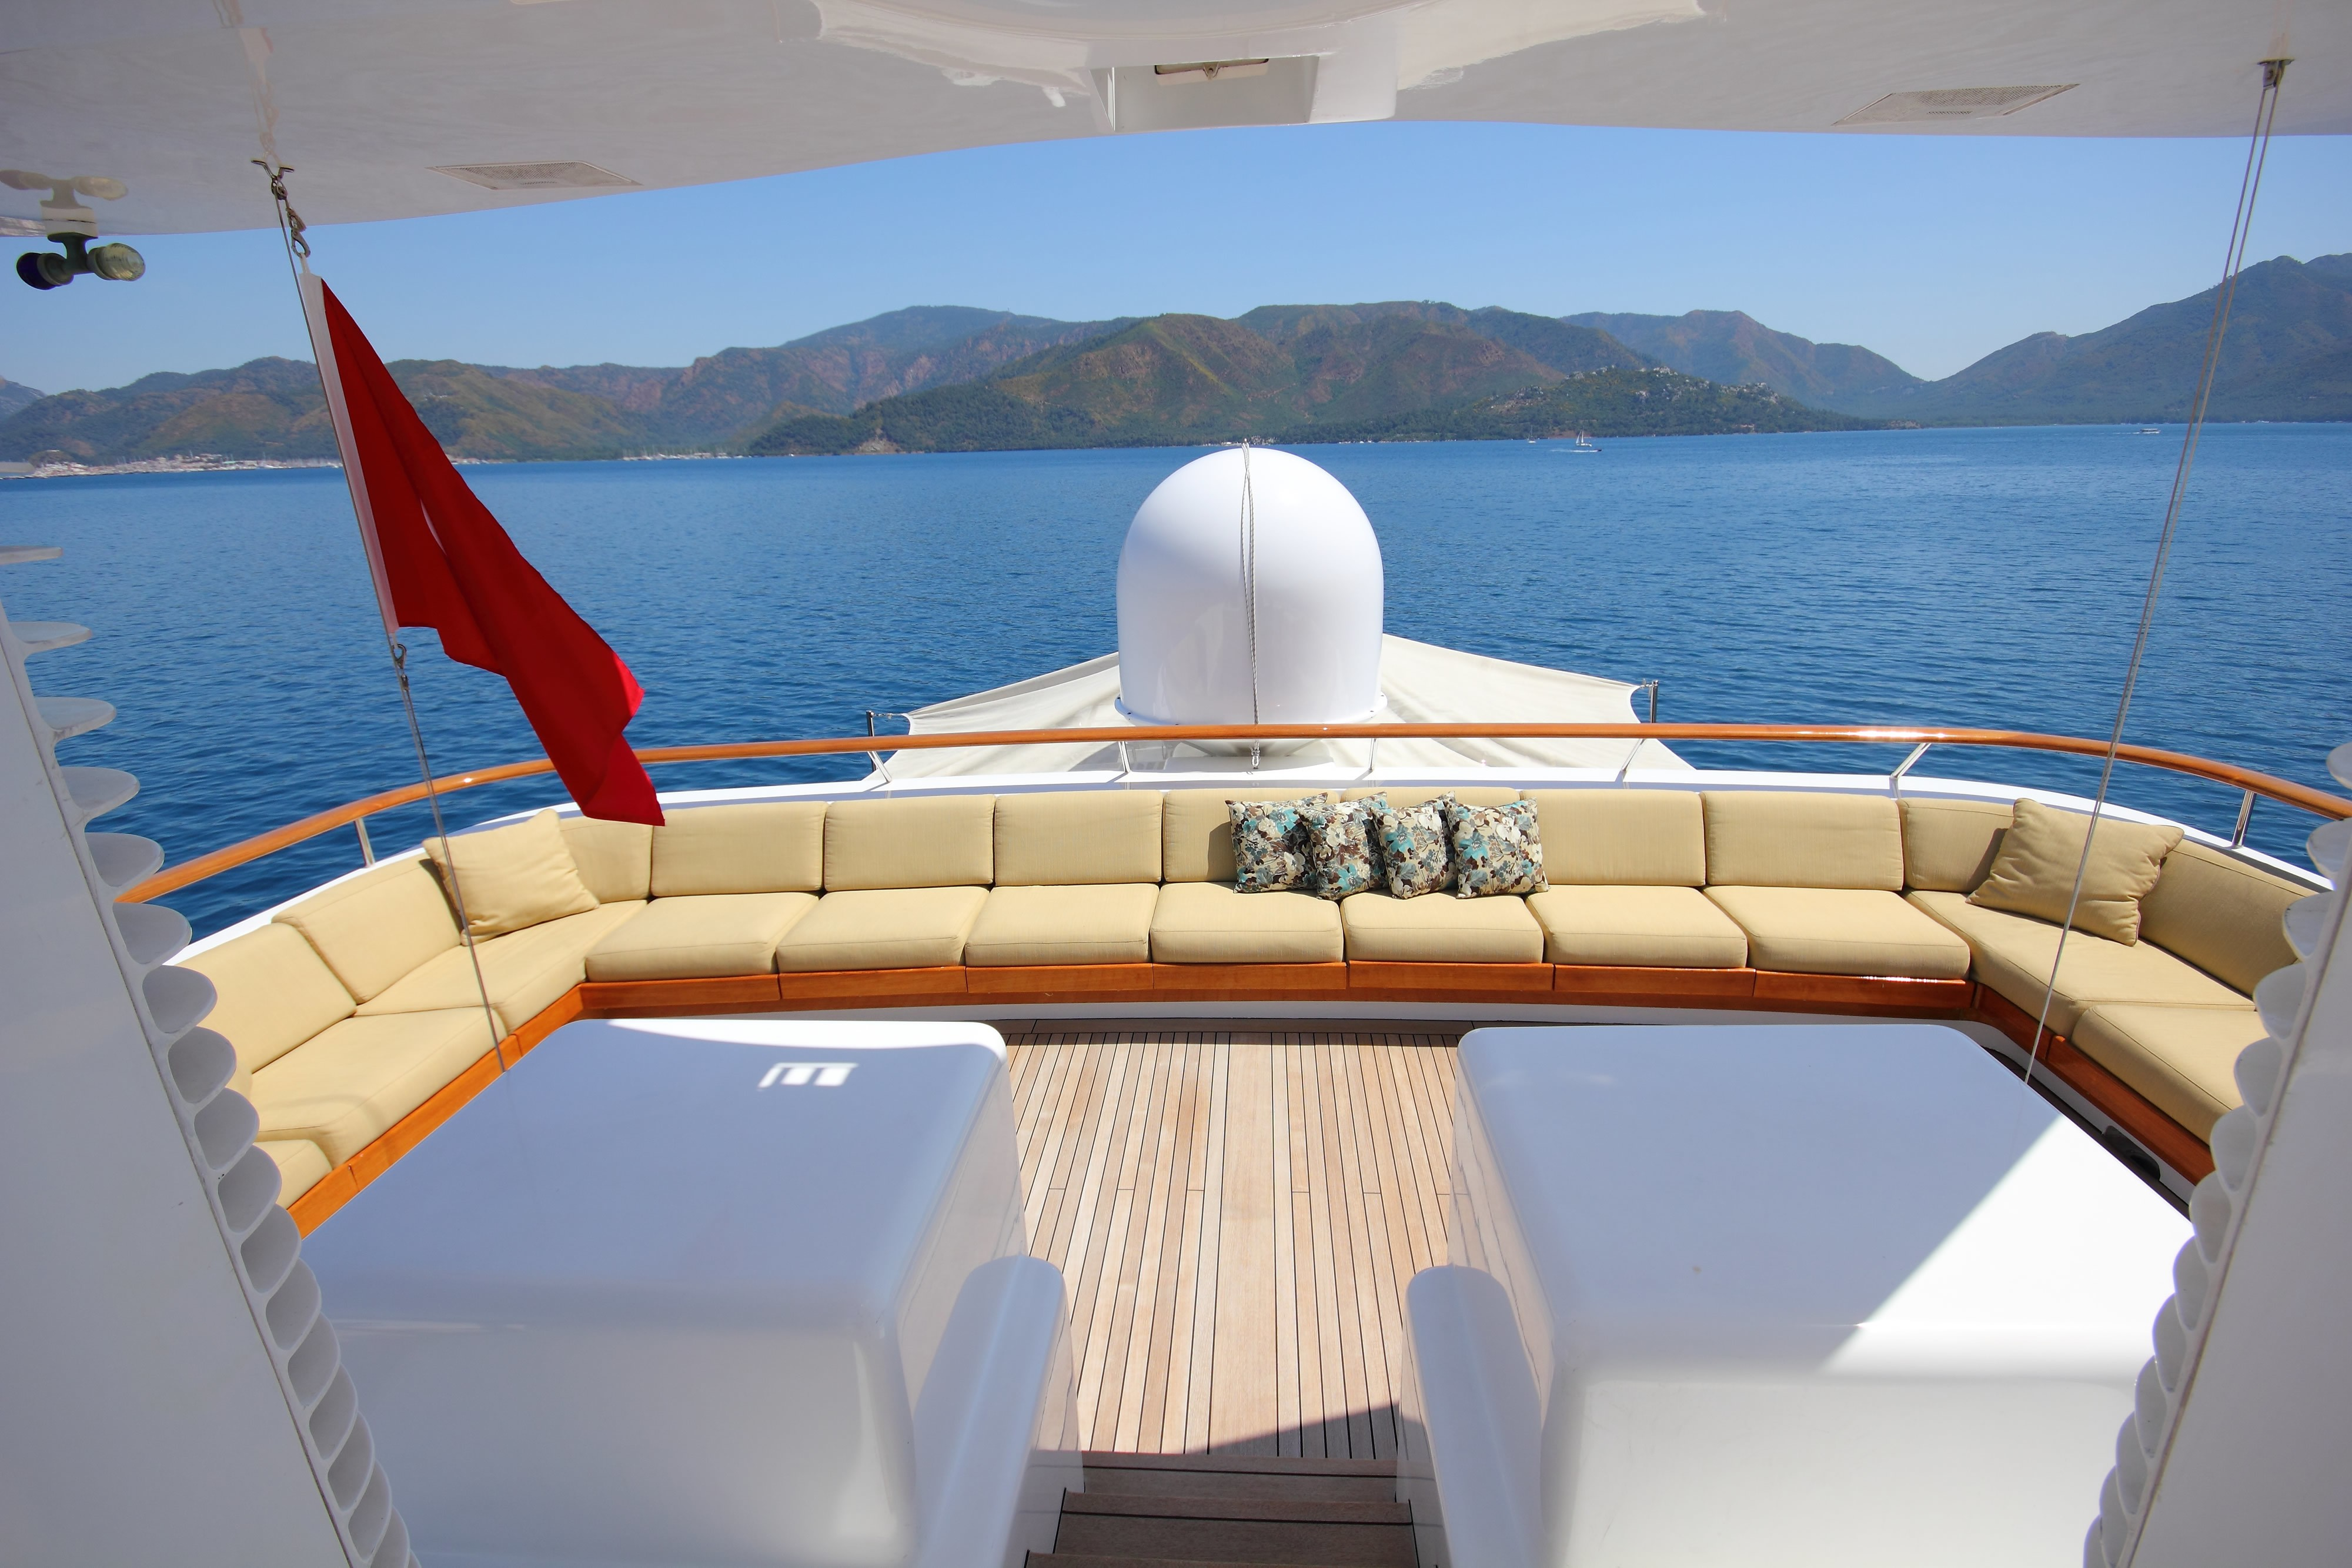 The 40m Yacht MONTE CARLO